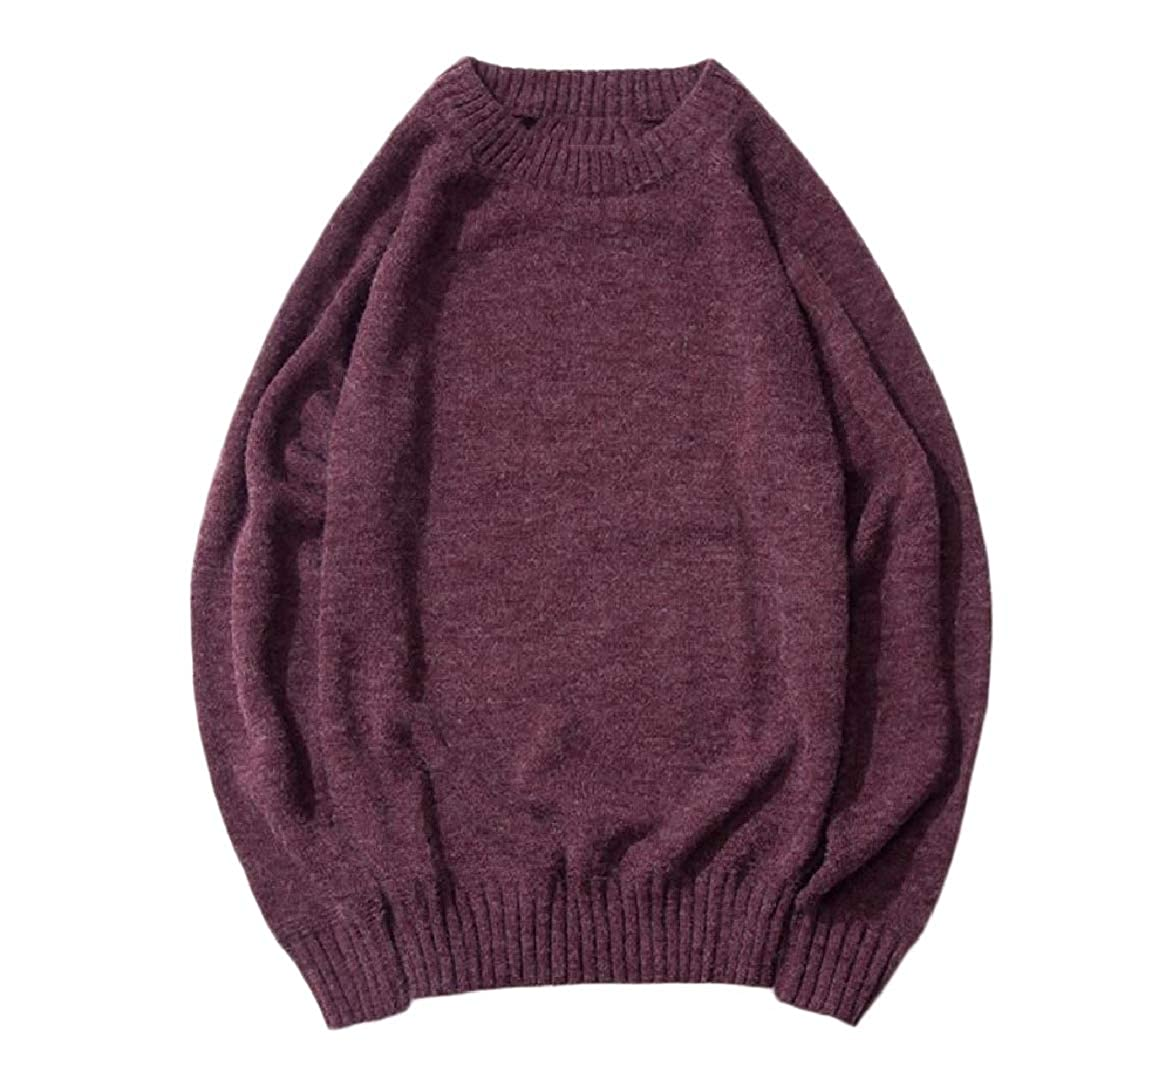 YUNY Mens Classic-Fit Winter Knit Warm Casual Loose Pullover Sweaters Wine Red S